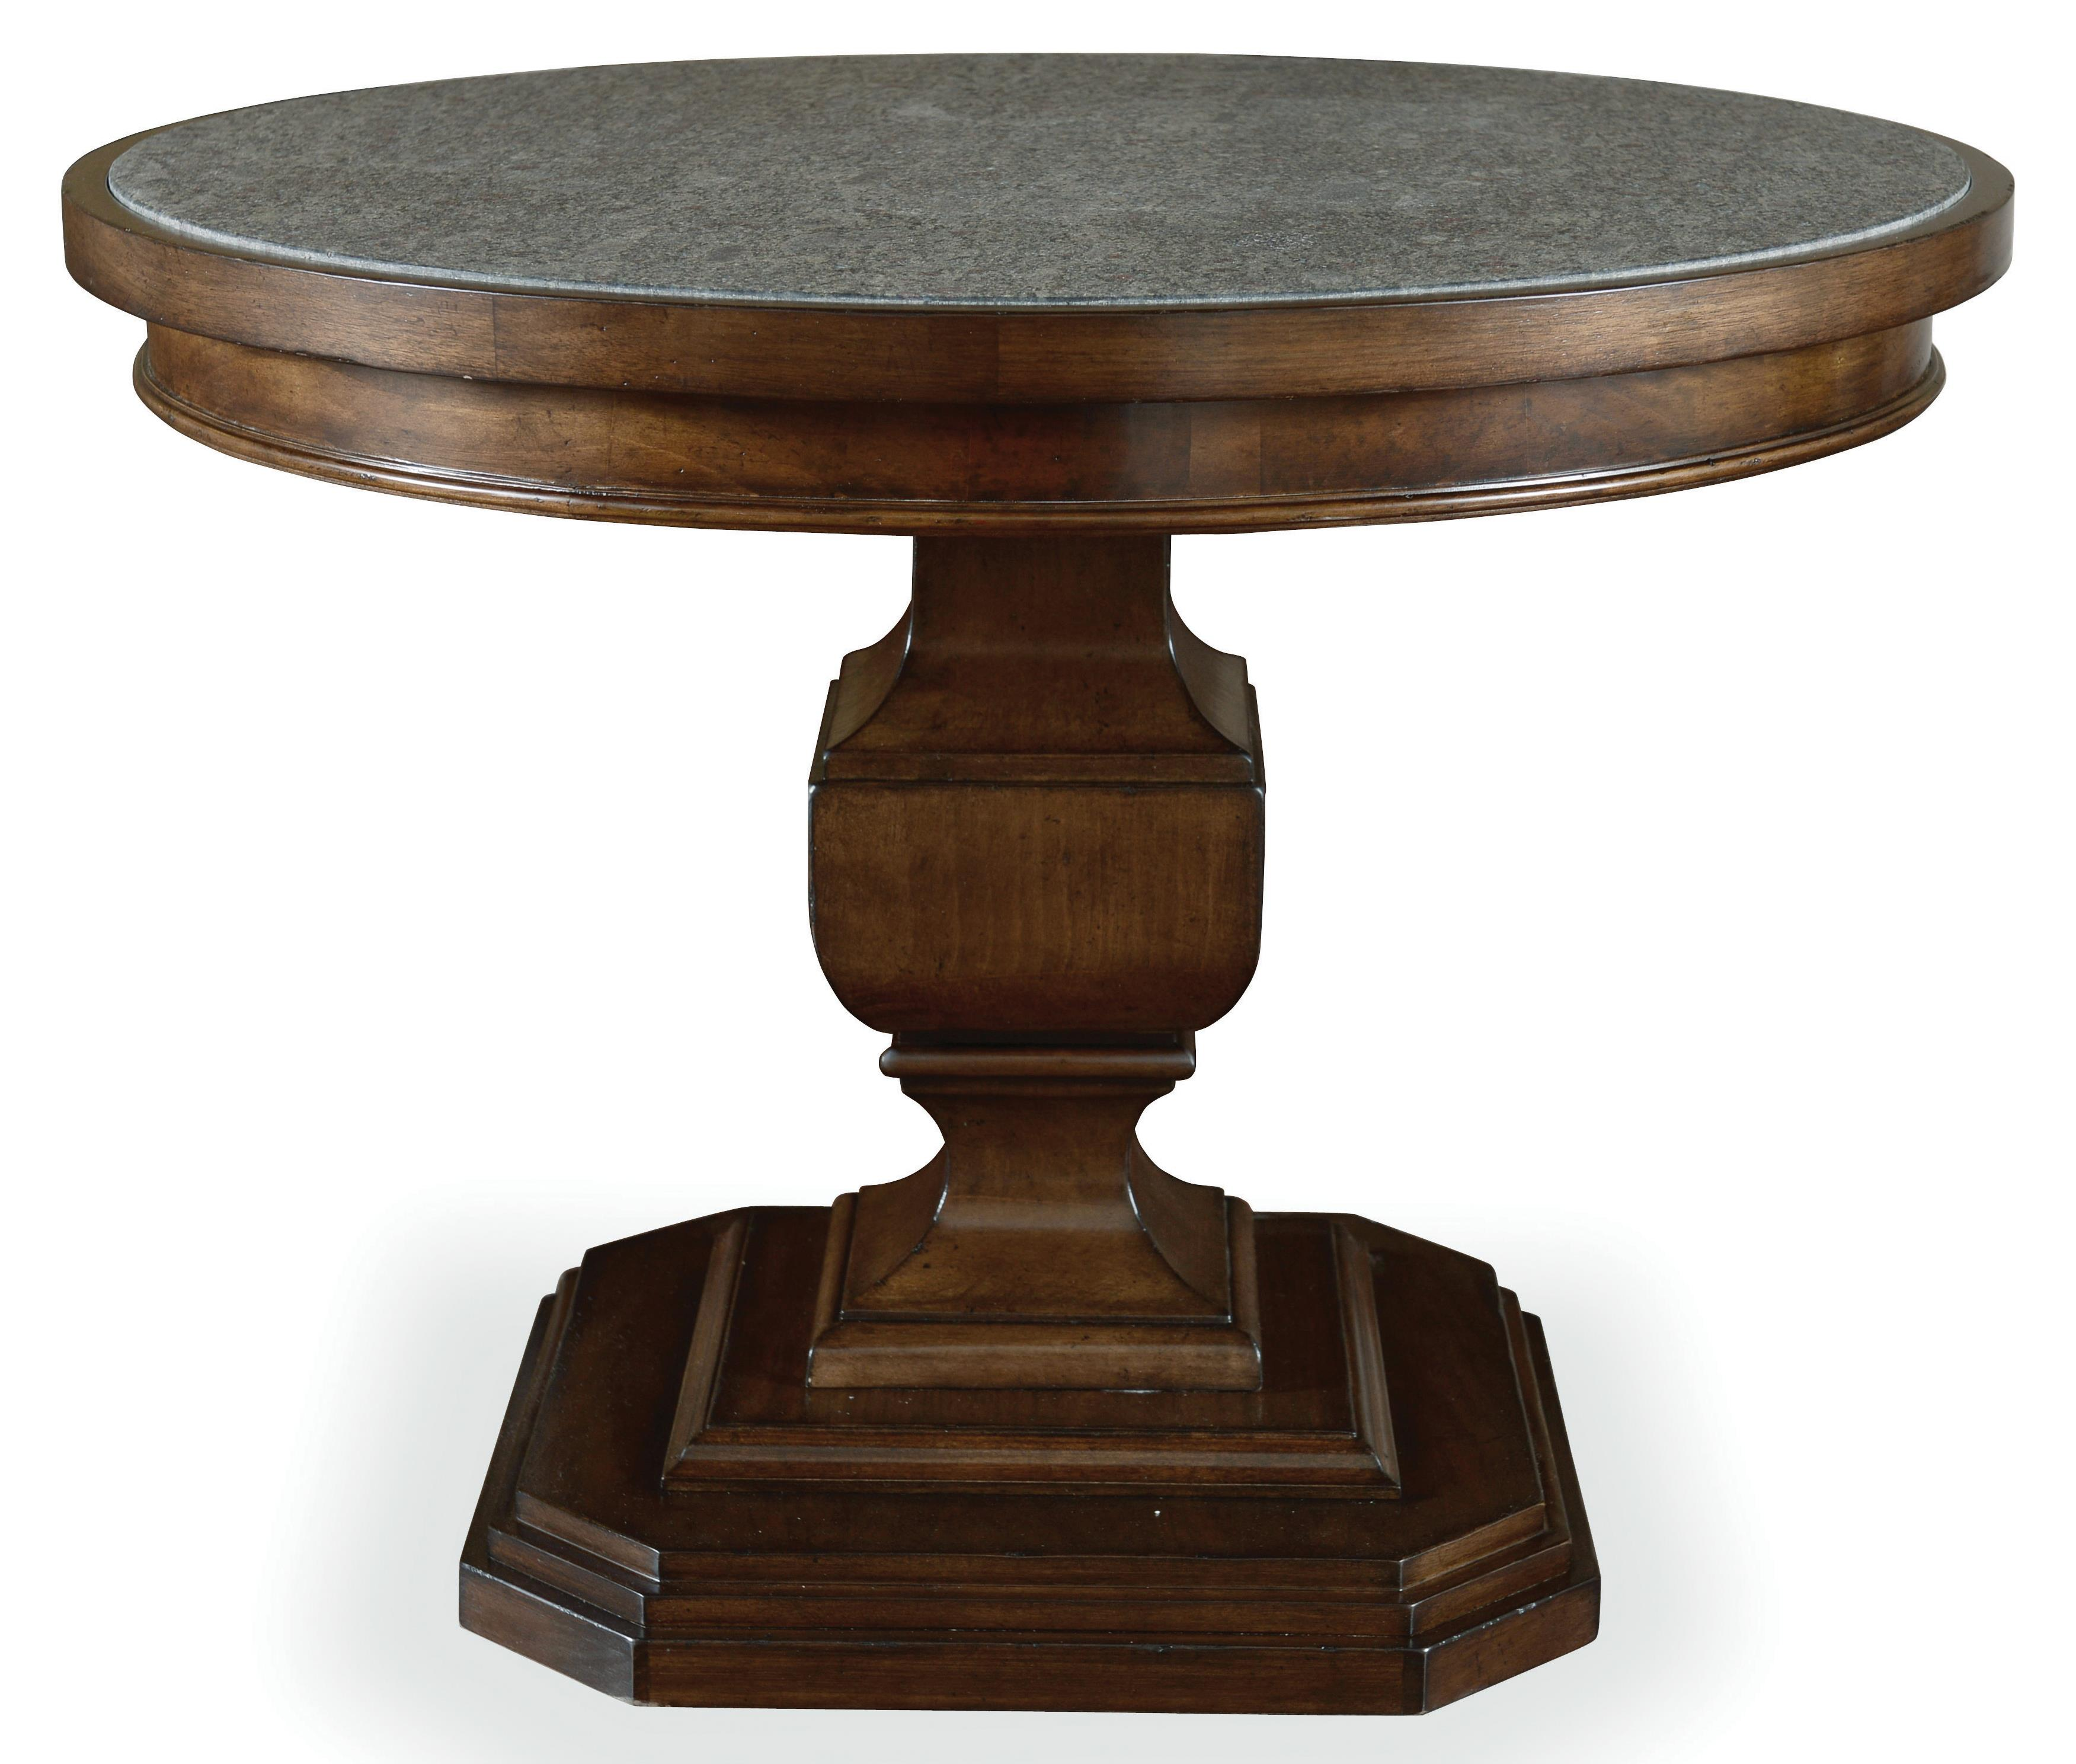 Chateaux Adjustable Height End Table with Acid-Washed Blue Granite Top